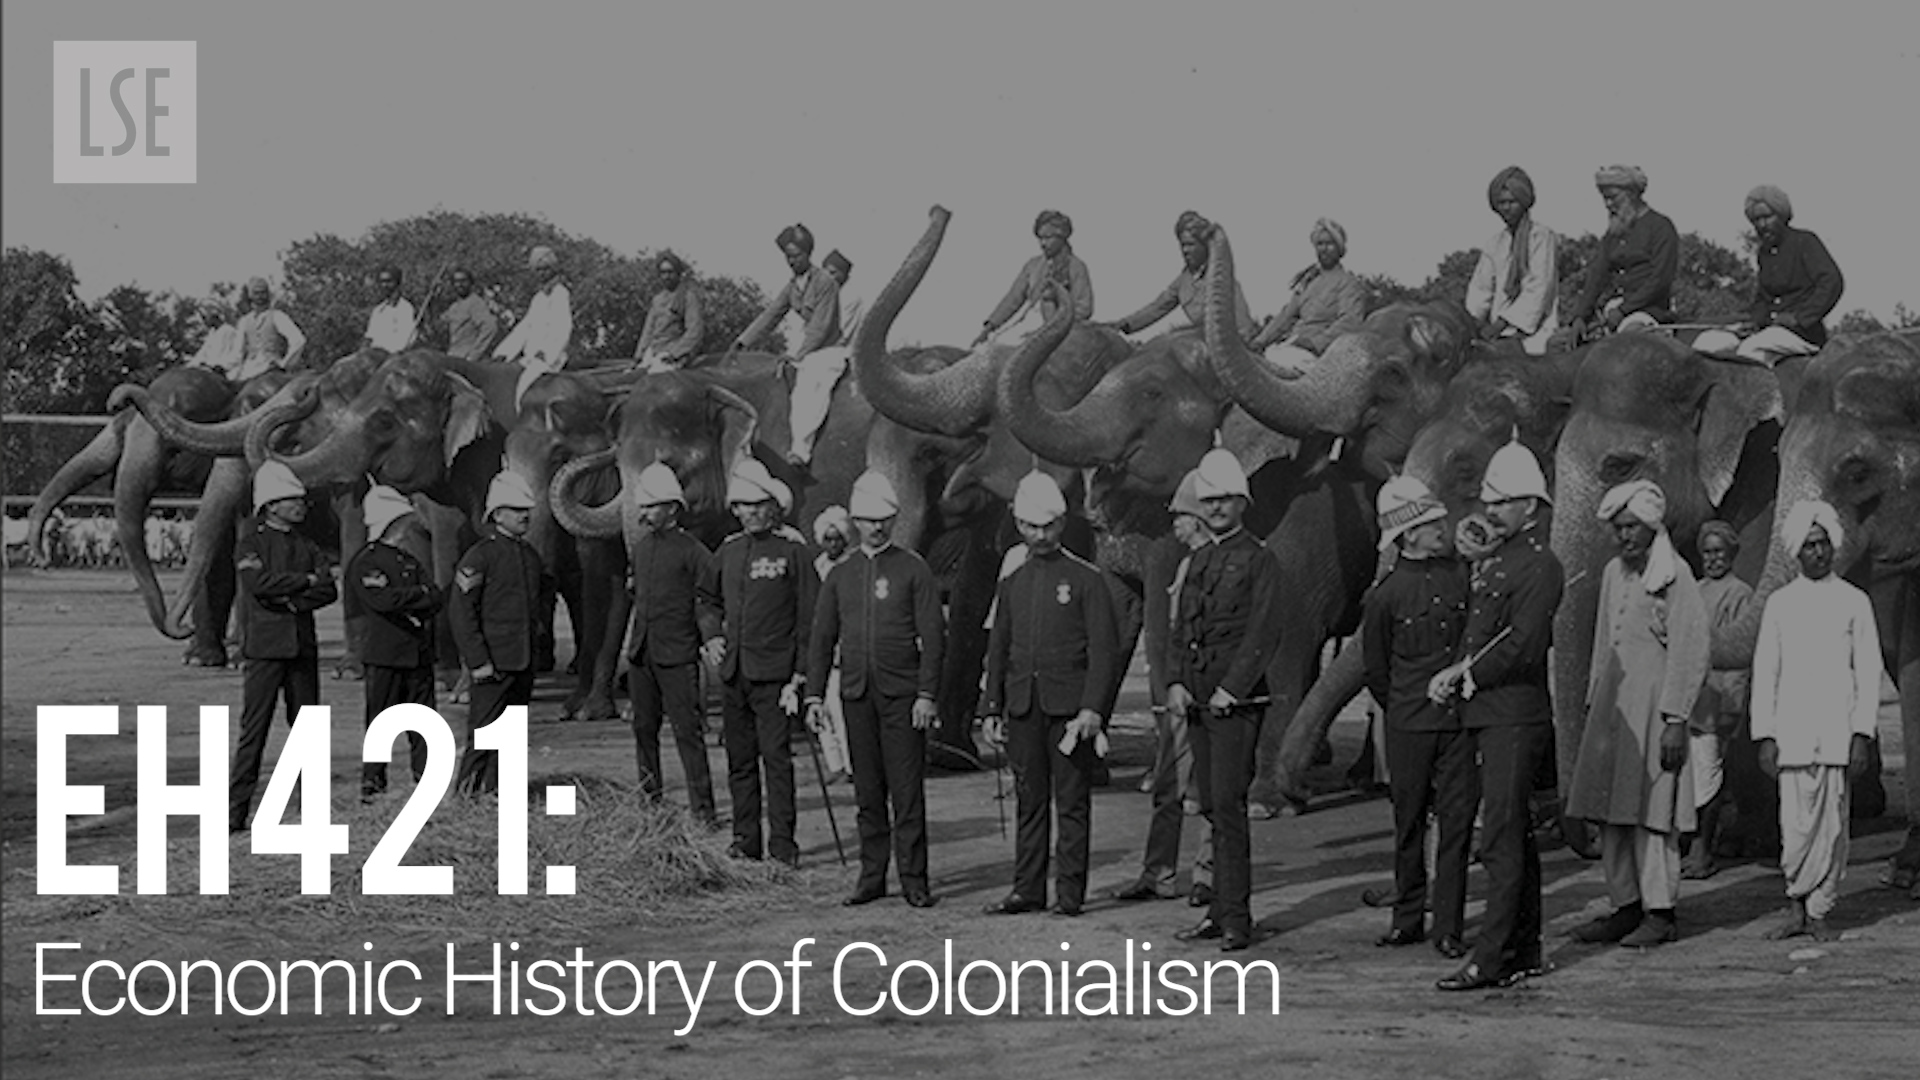 EH421 Economic History of Colonialism